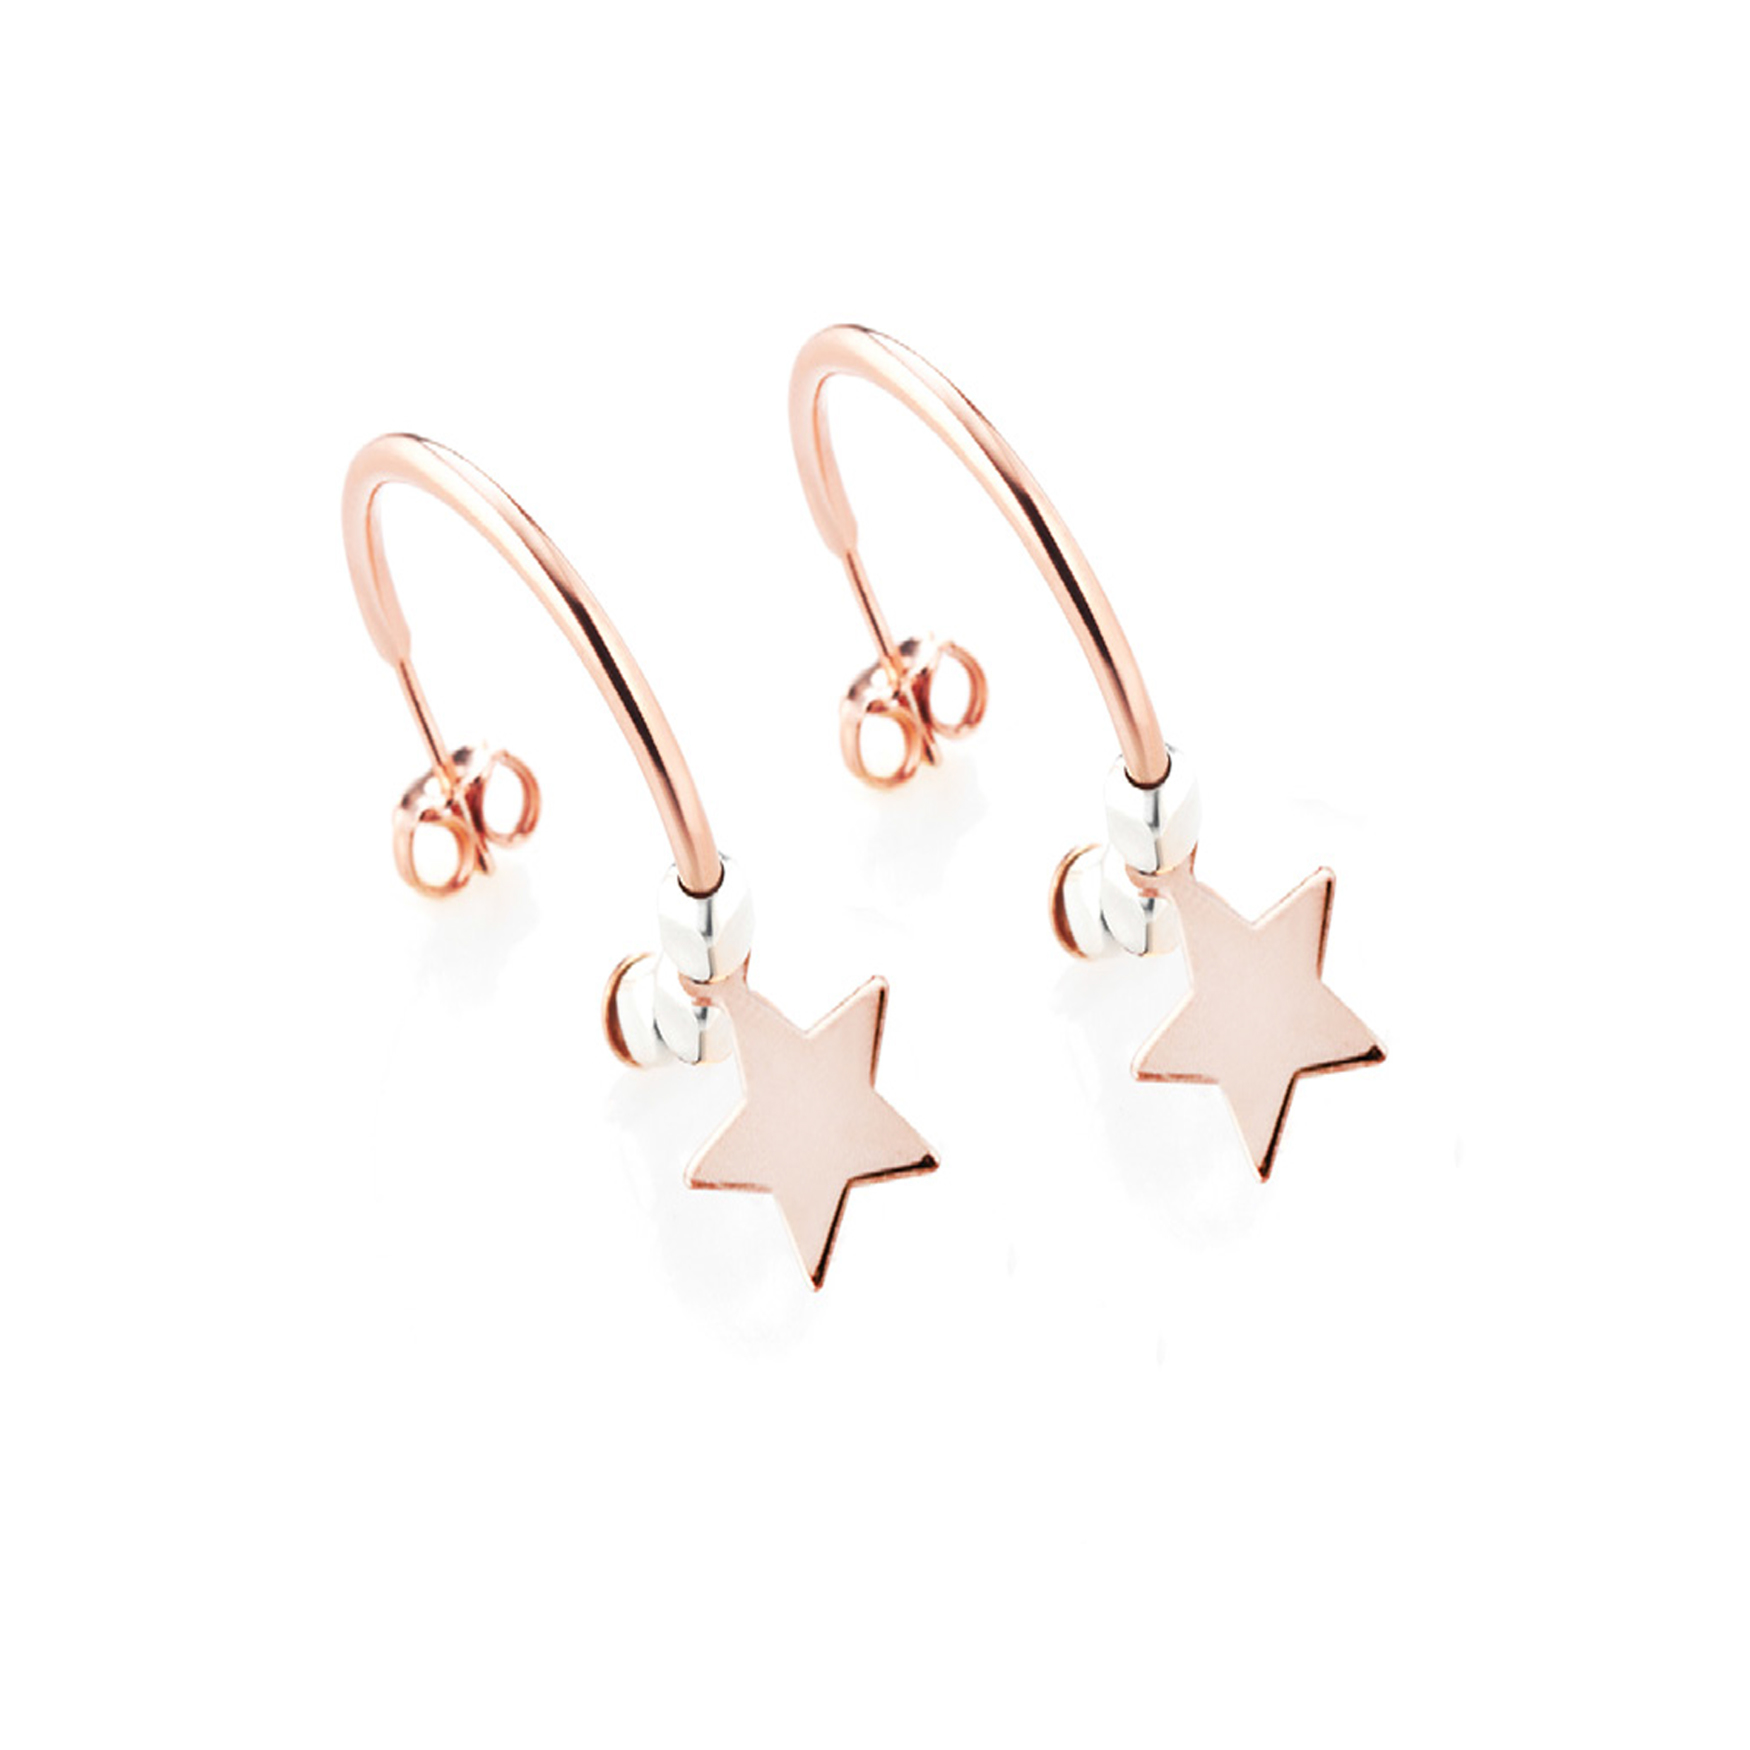 Sensi joyas jewellery Granada silver engagementSILVER EARRINGS COVERED  ROSE GOLD